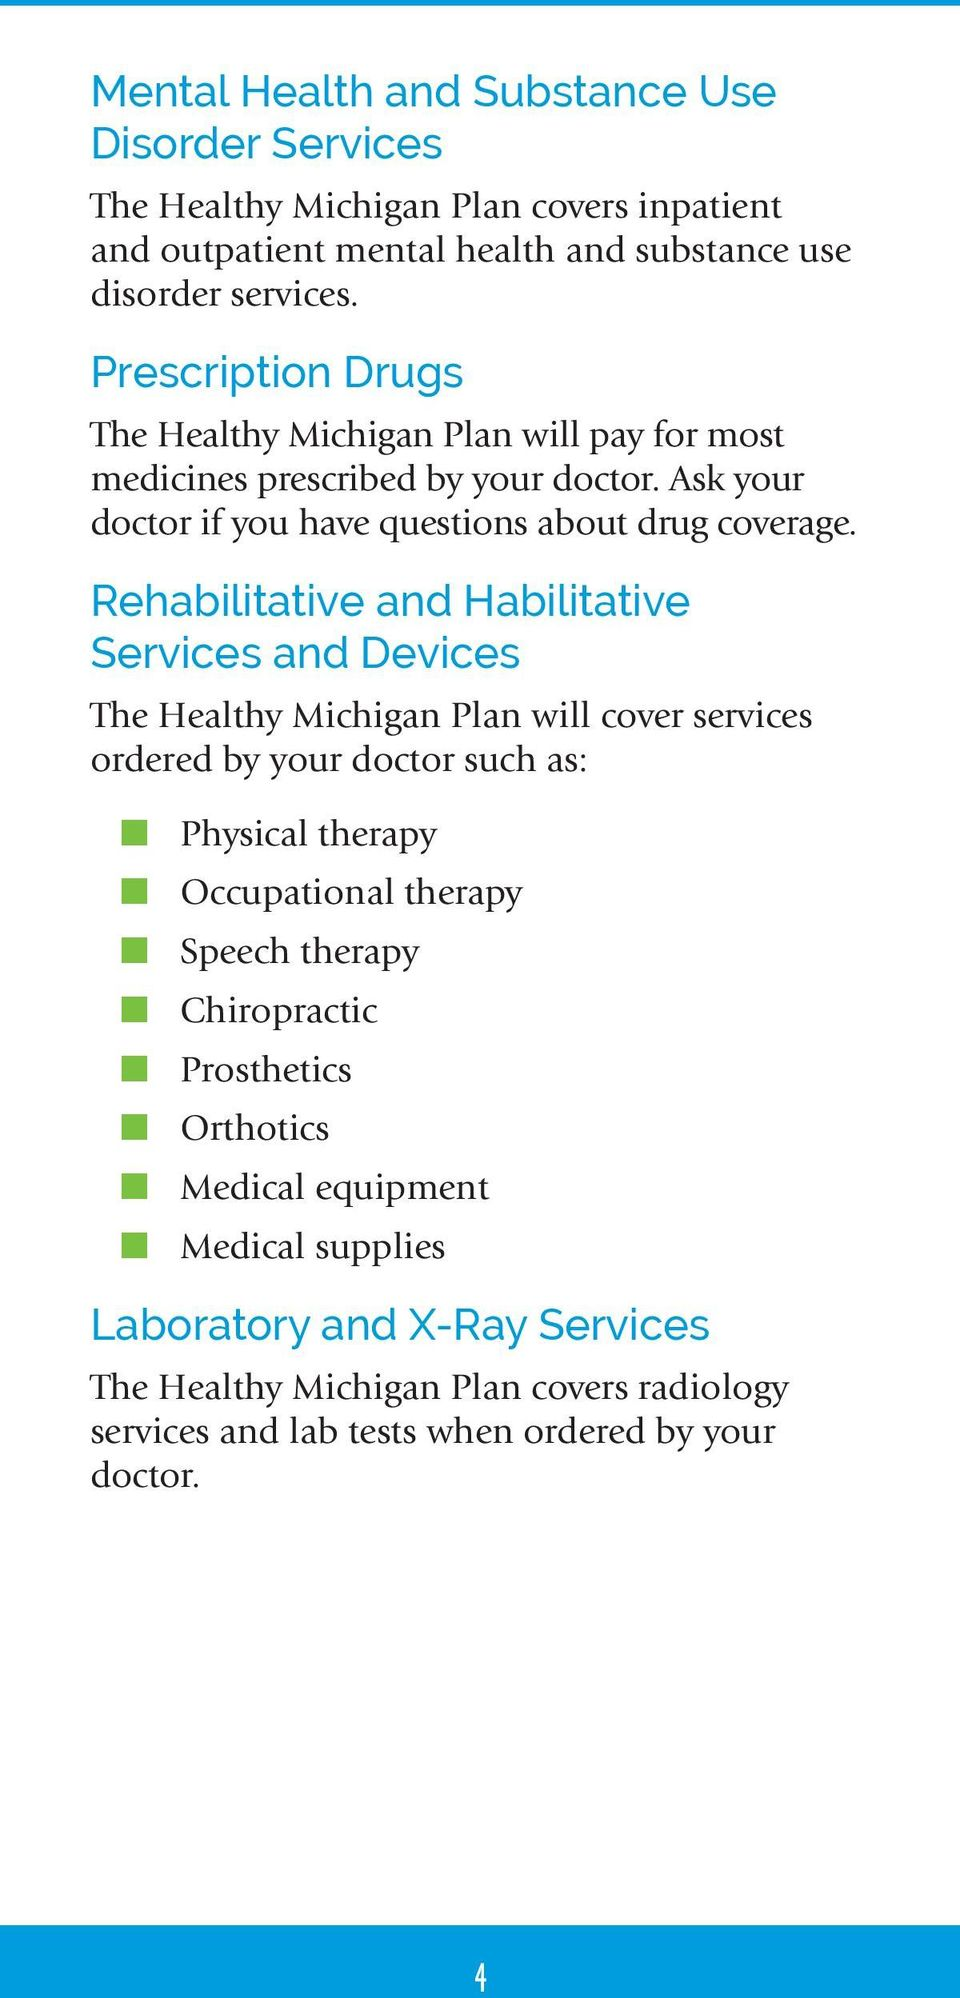 Rehabilitative and Habilitative Services and Devices The Healthy Michigan Plan will cover services ordered by your doctor such as: n Physical therapy n Occupational therapy n